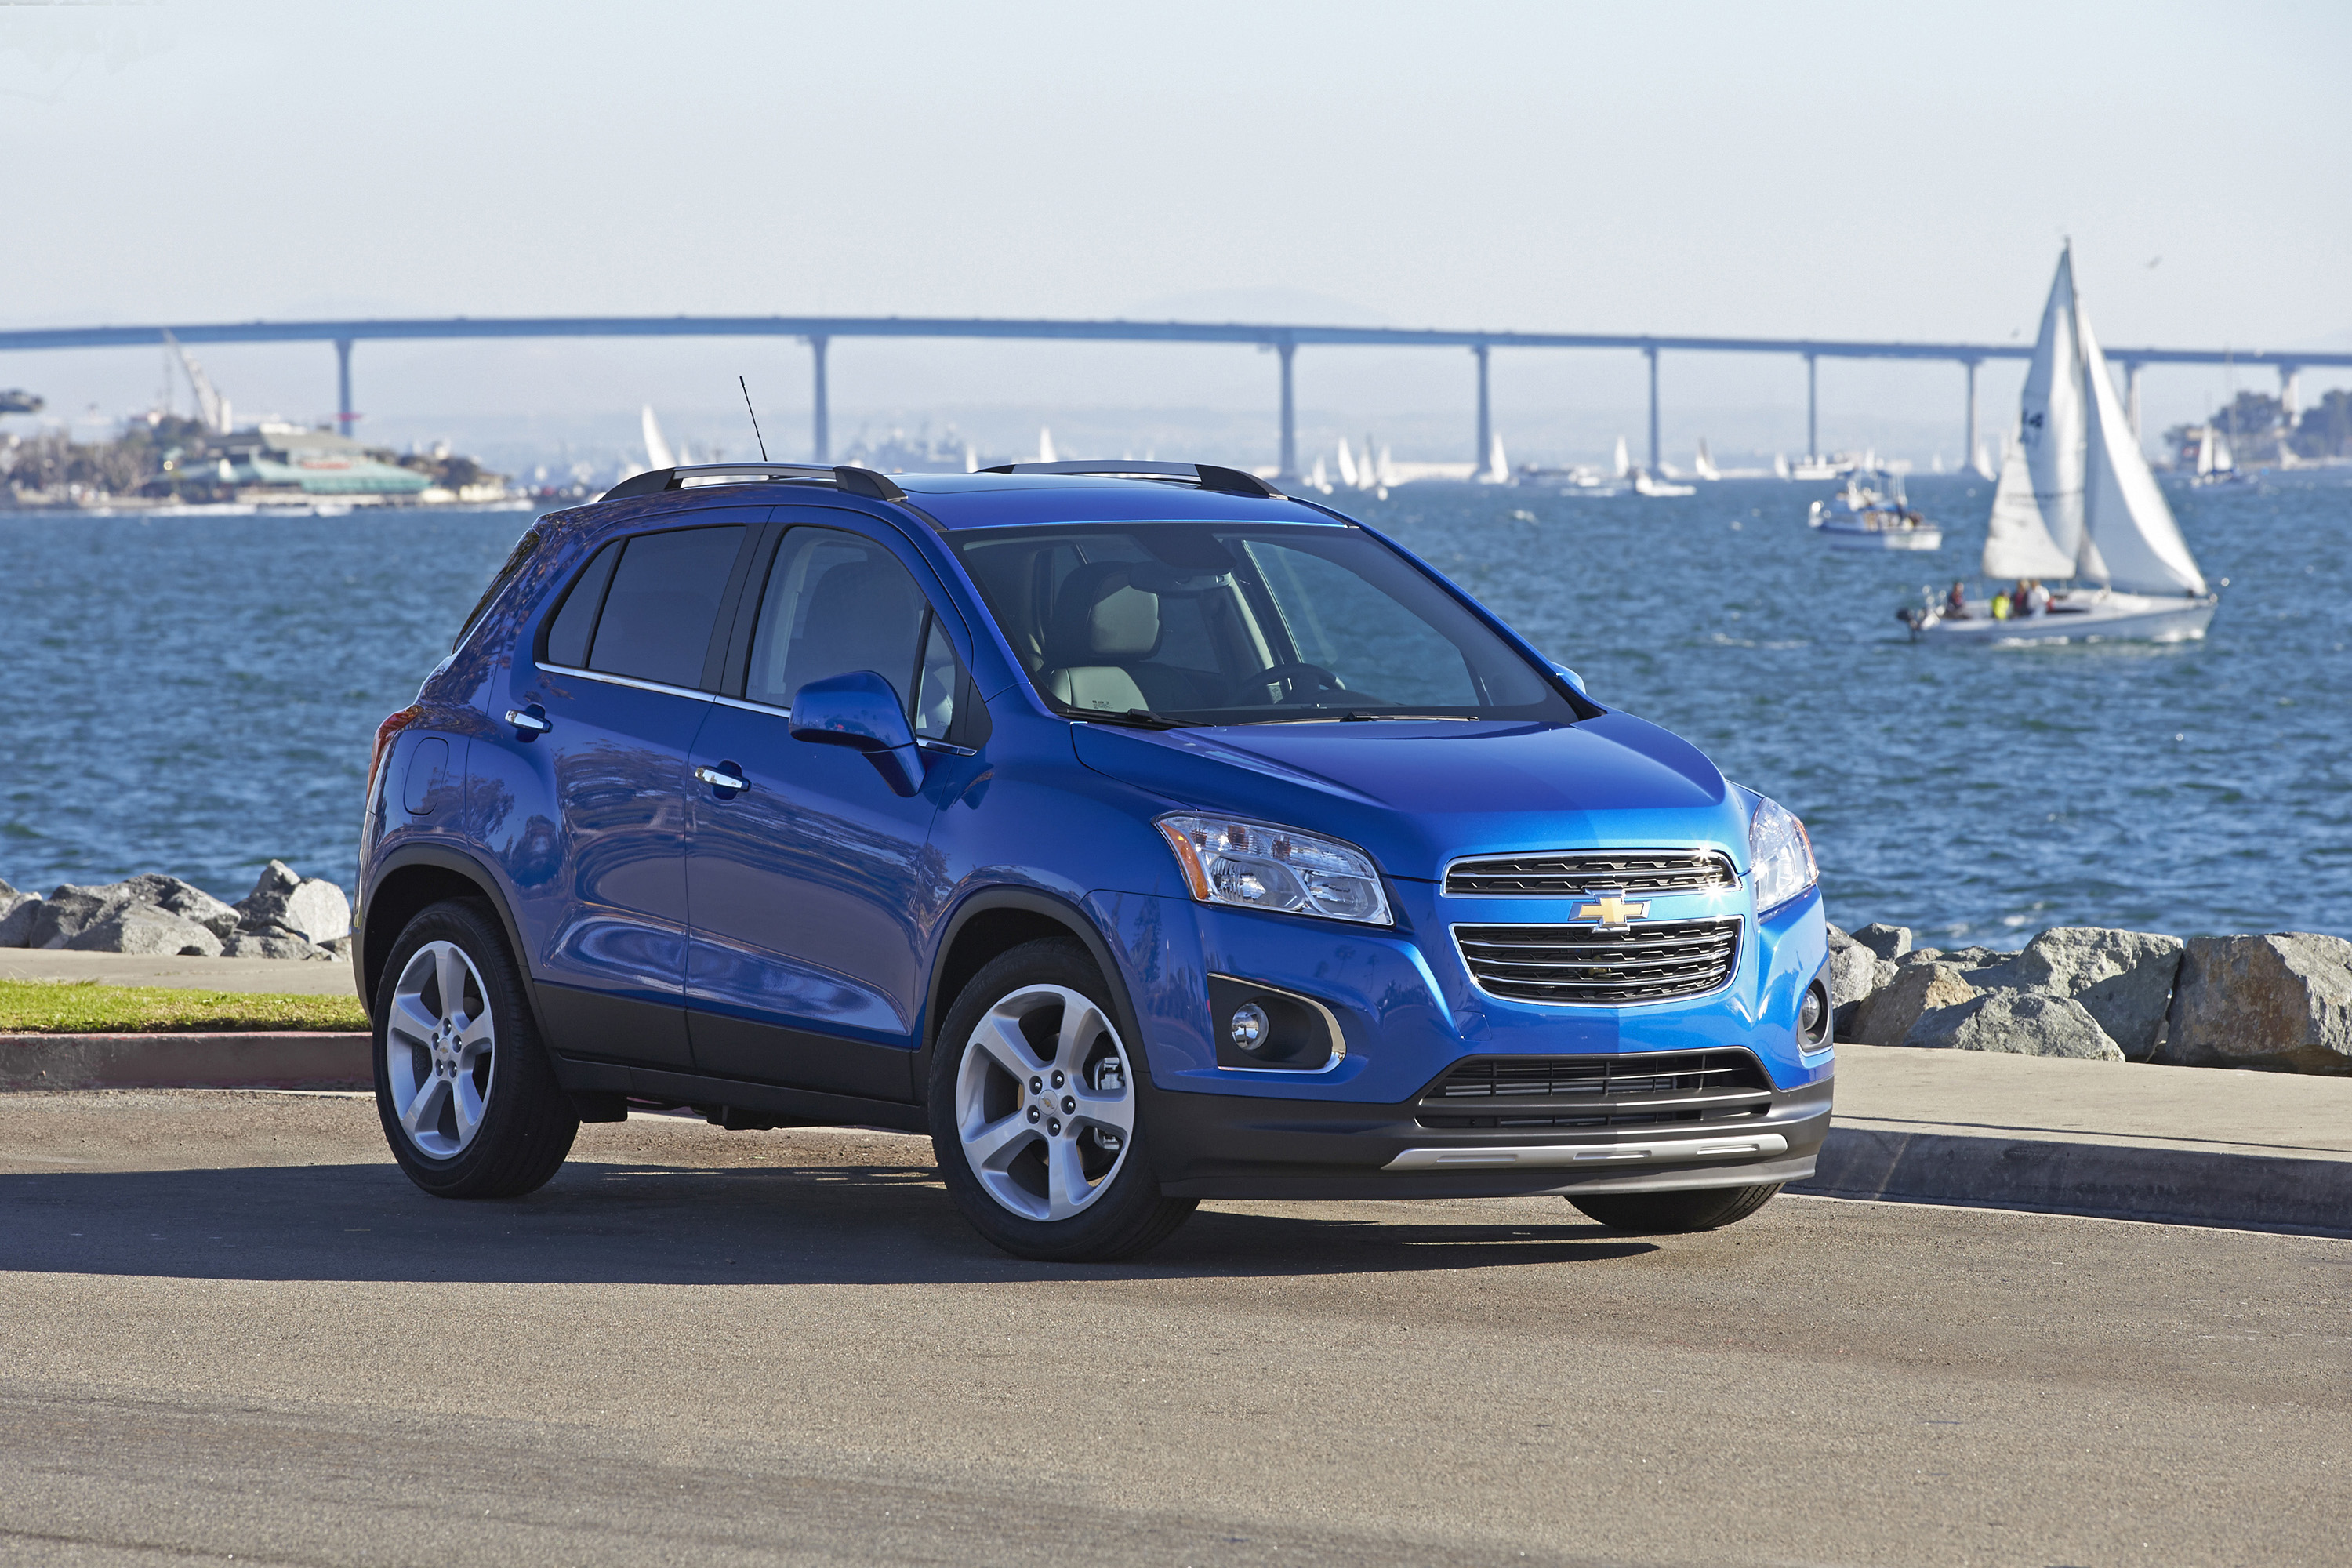 Chevrolet Entering the New Small SUV The Trax